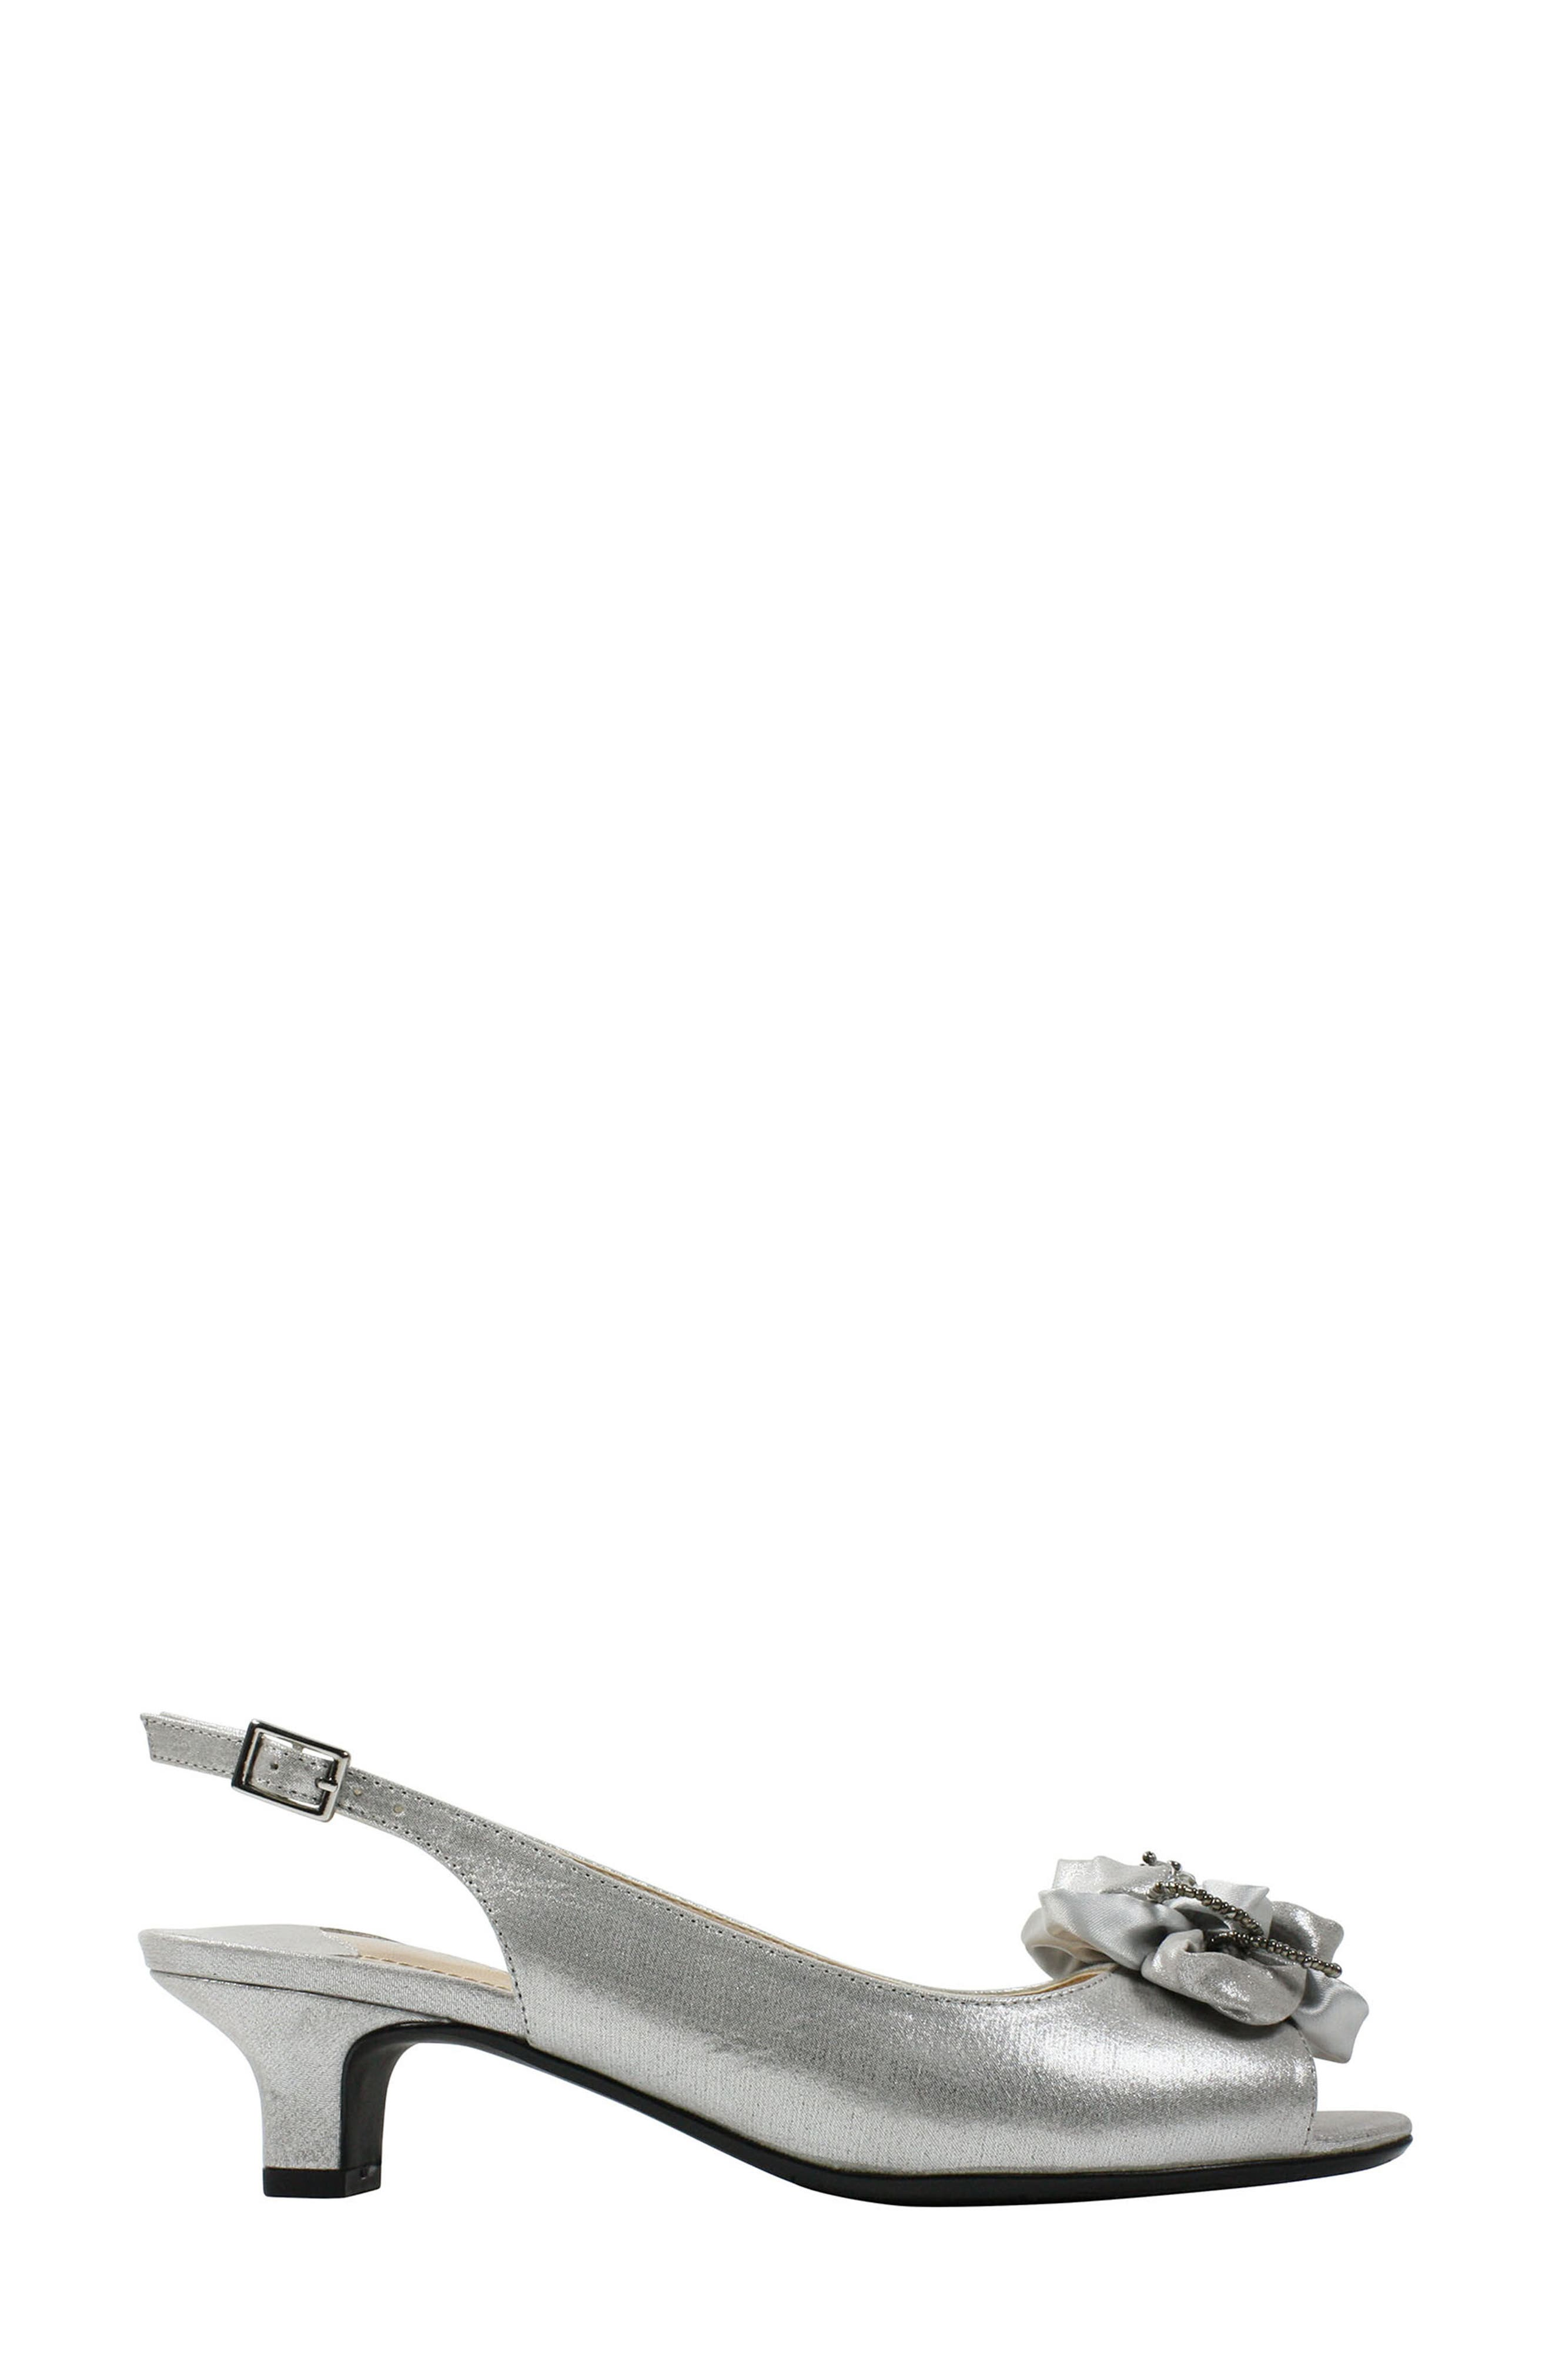 J. RENEÉ, Leonelle Slingback Crystal Embellished Sandal, Alternate thumbnail 3, color, SILVER SATIN